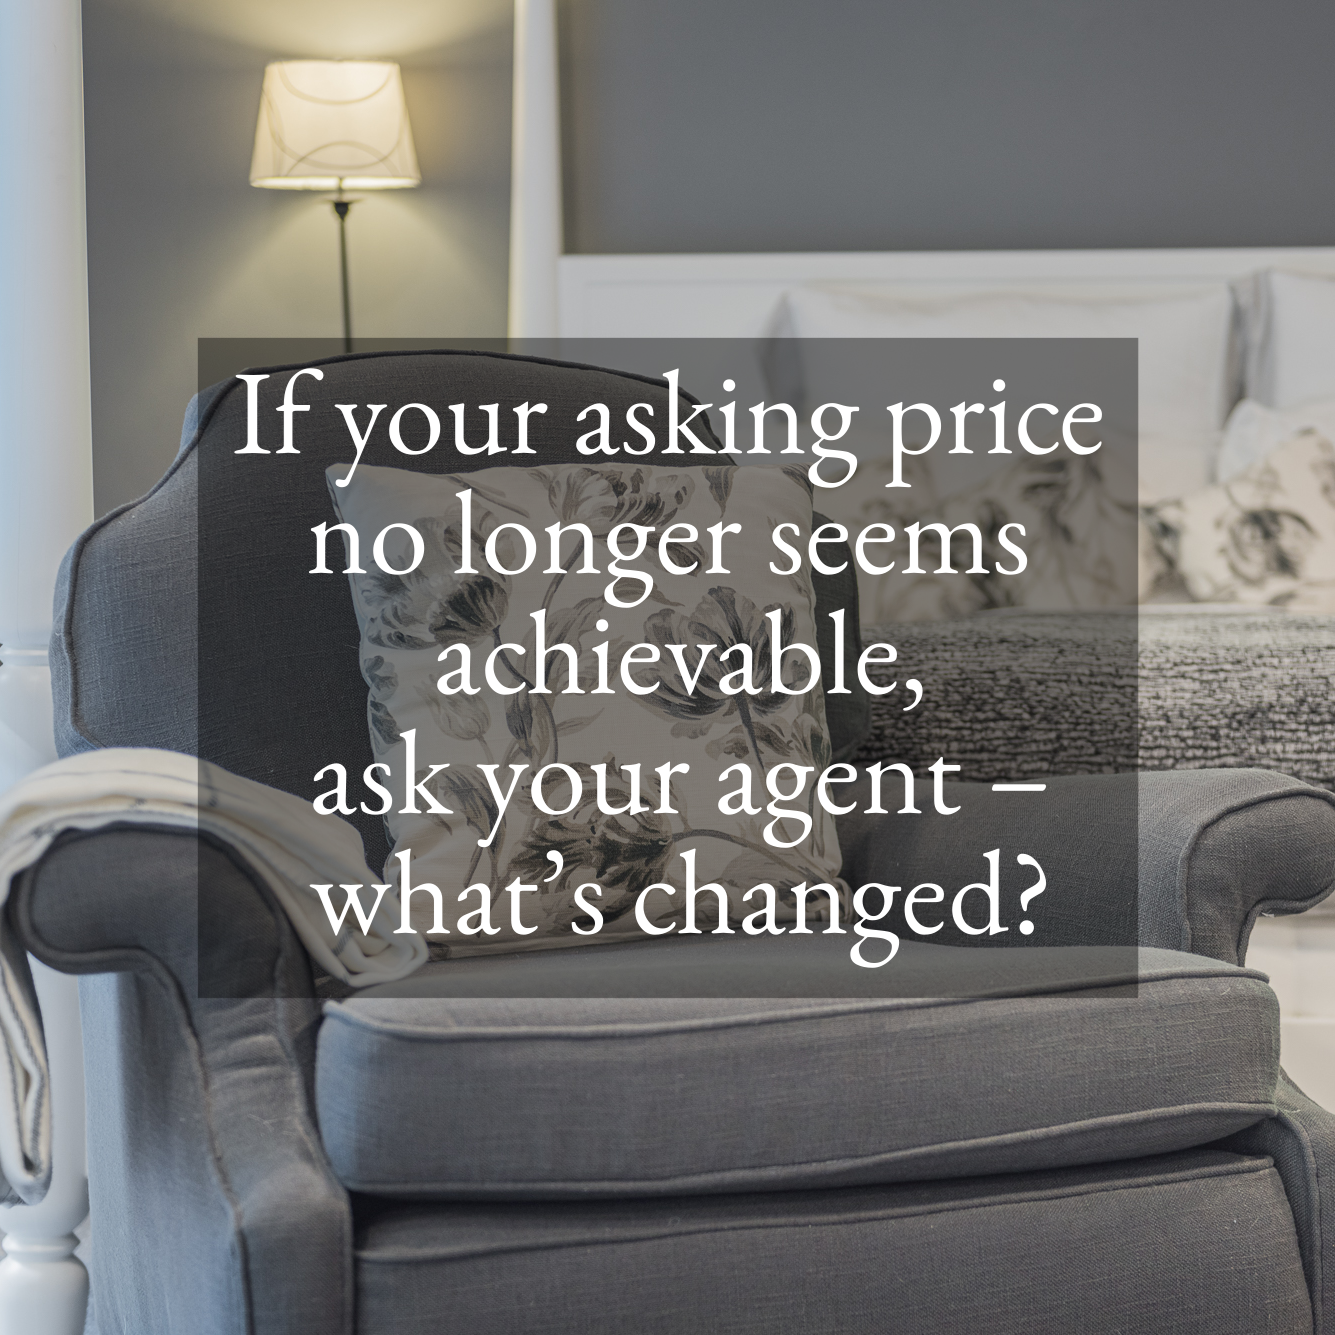 tg2-if-your-asking-price-no-longer-seems-achievable